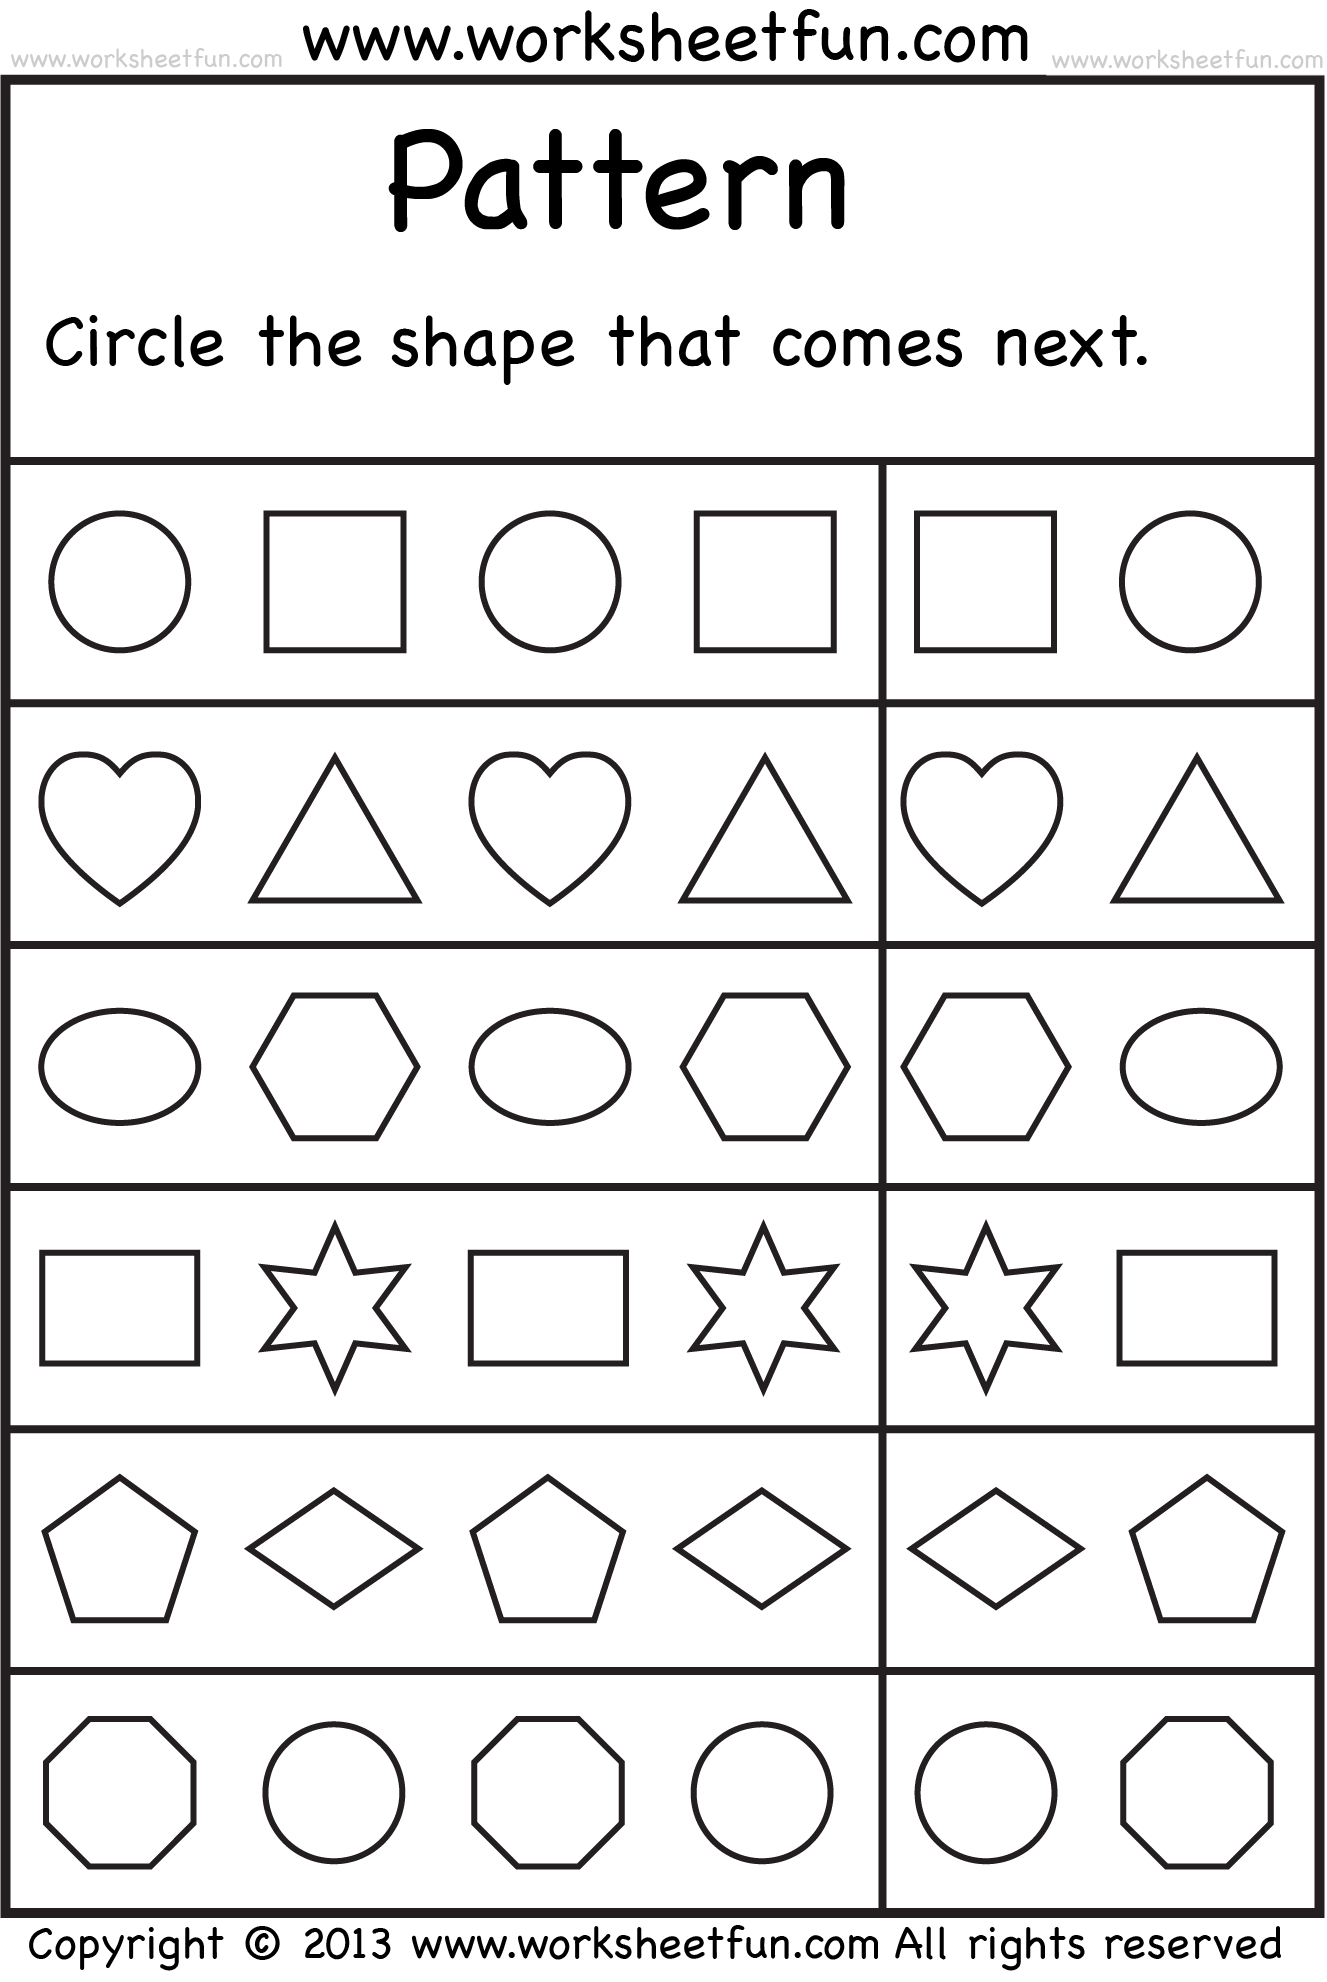 Weirdmailus  Wonderful  Images About School Worksheets On Pinterest  Number Words  With Engaging  Images About School Worksheets On Pinterest  Number Words Alphabet Worksheets And Free Printable Kindergarten Worksheets With Attractive Number Line Worksheets Ks Also Addition Facts To  Worksheet In Addition Tracing Number Words Worksheets And Worksheets On Integers For Grade  As Well As Adjectives Worksheet For Kids Additionally Transitive And Intransitive Worksheet From Pinterestcom With Weirdmailus  Engaging  Images About School Worksheets On Pinterest  Number Words  With Attractive  Images About School Worksheets On Pinterest  Number Words Alphabet Worksheets And Free Printable Kindergarten Worksheets And Wonderful Number Line Worksheets Ks Also Addition Facts To  Worksheet In Addition Tracing Number Words Worksheets From Pinterestcom